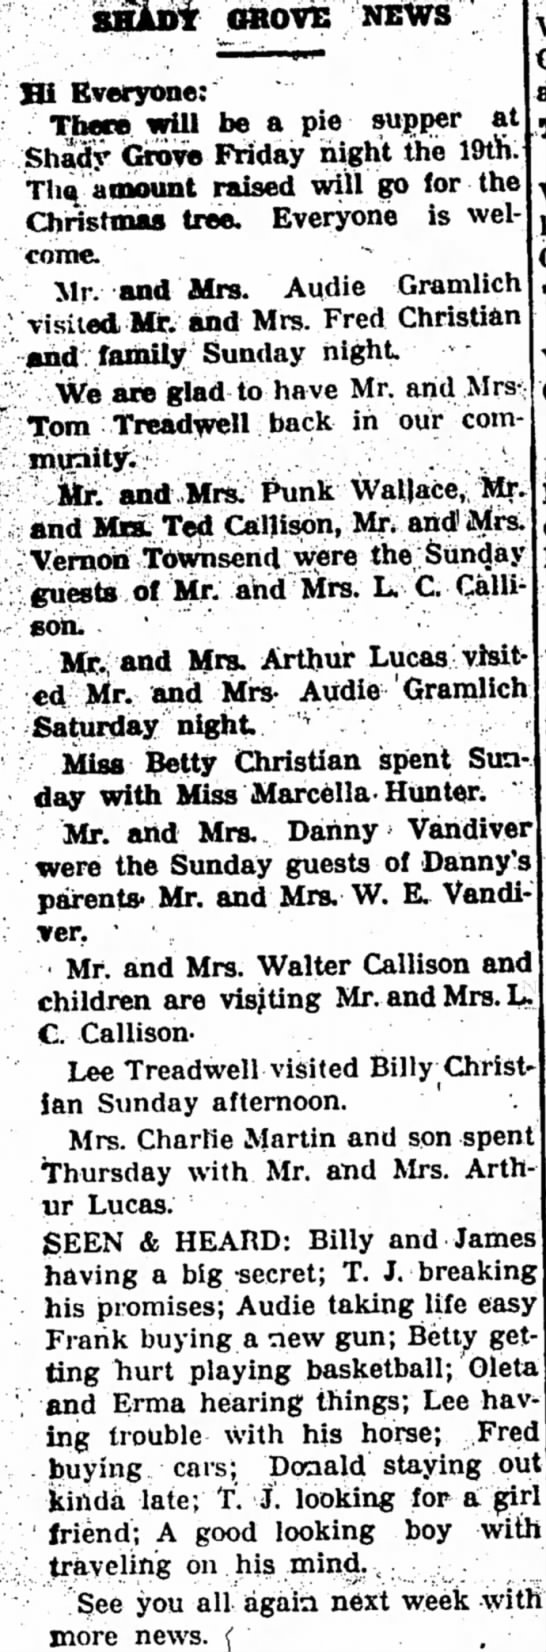 Lee Treadwell and Mr and Mrs Treadwell